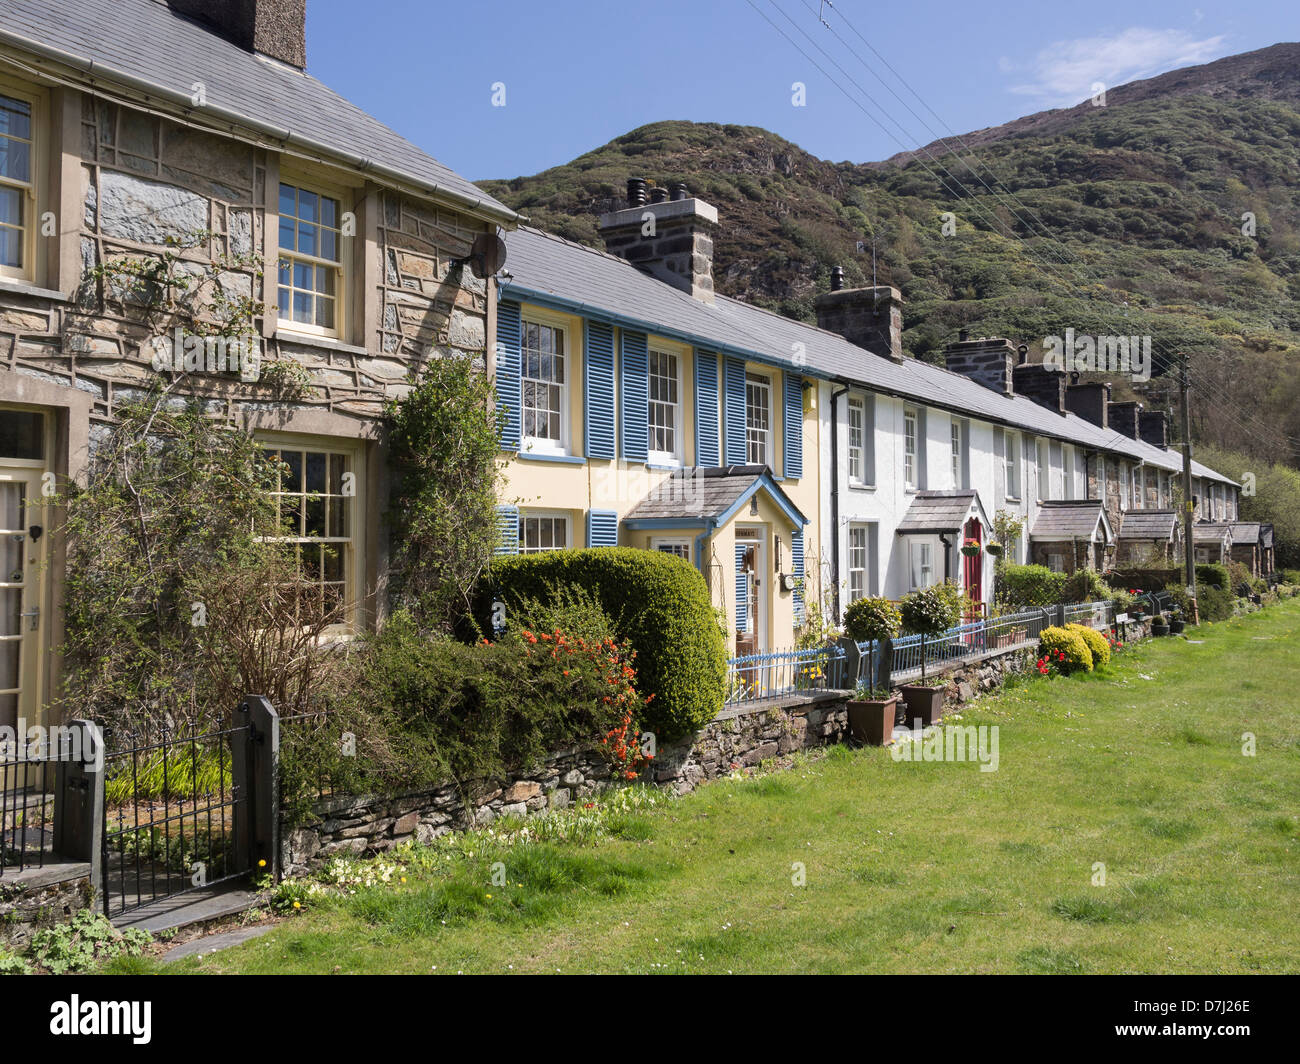 Row of traditional terraced cottages overlooking picturesque Welsh village green in Snowdonia National Park. Beddgelert, - Stock Image